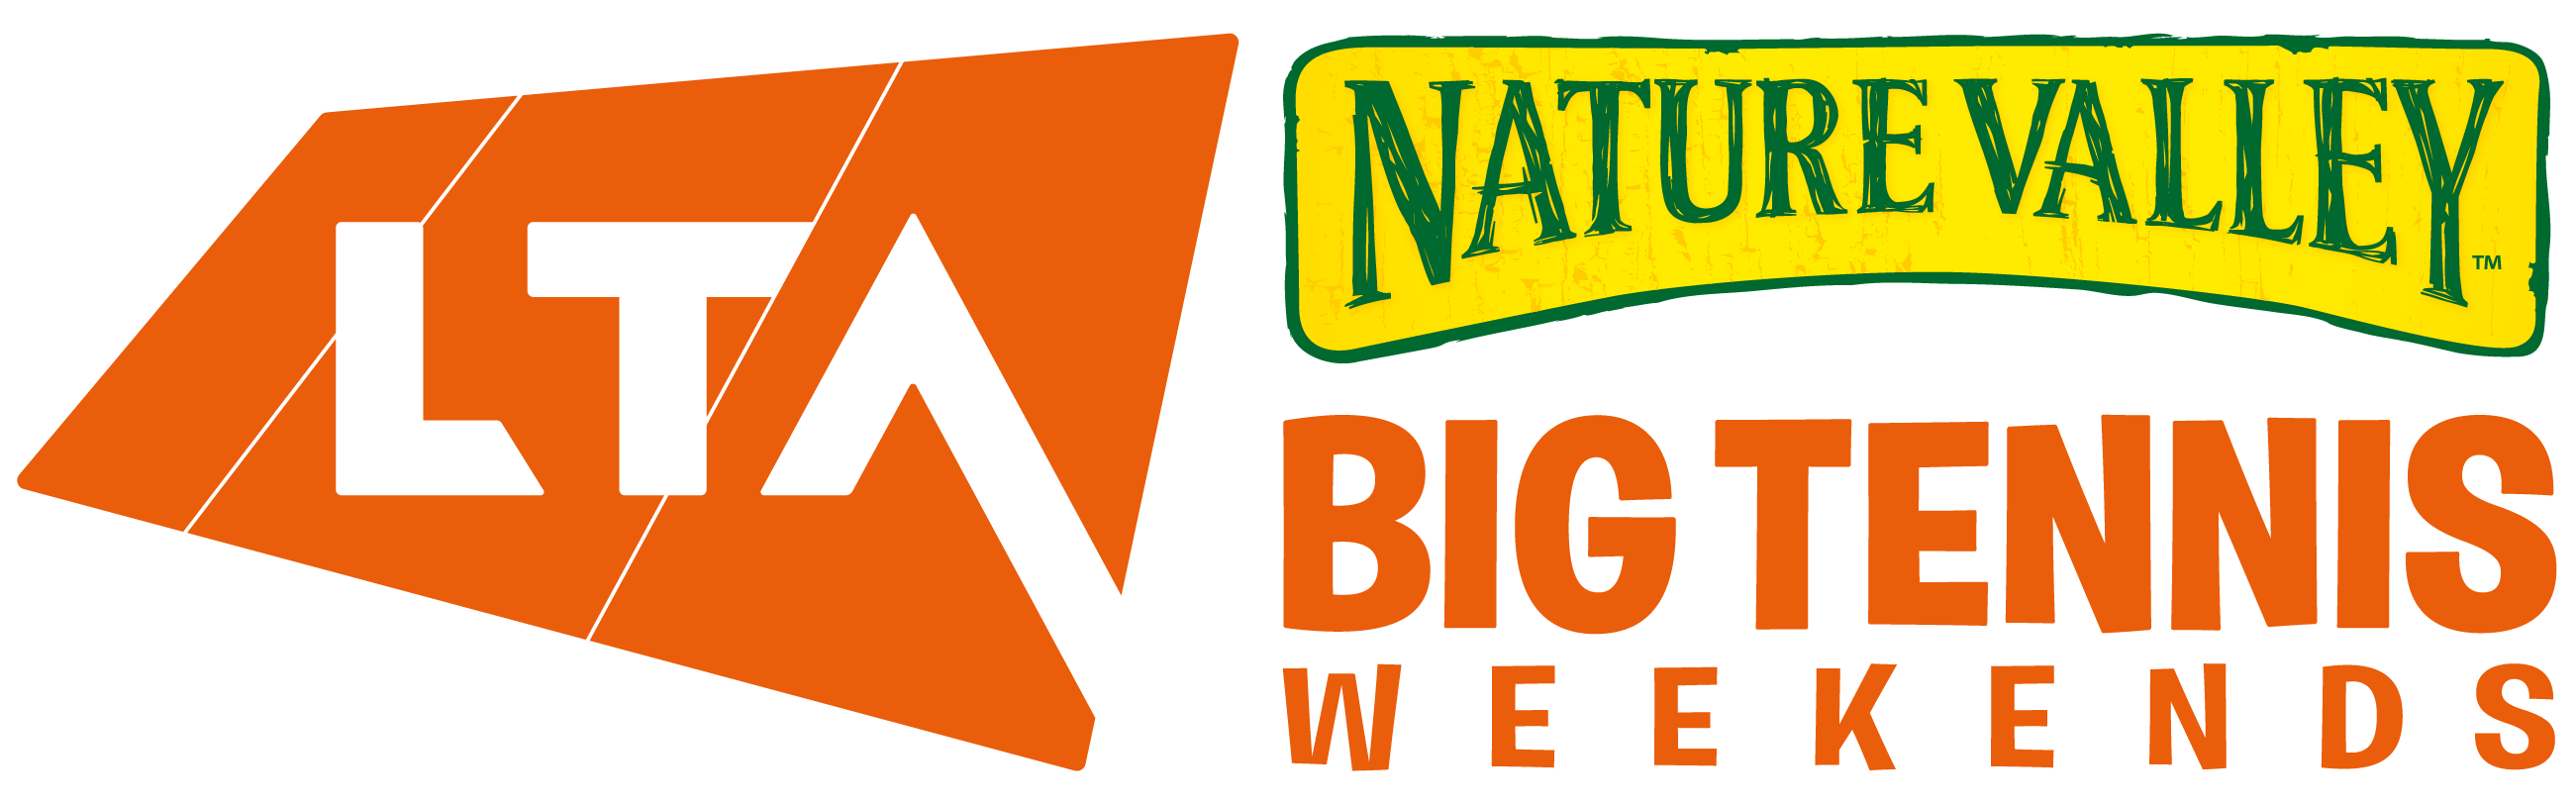 Nature Valley Big Tennis Weekend logo